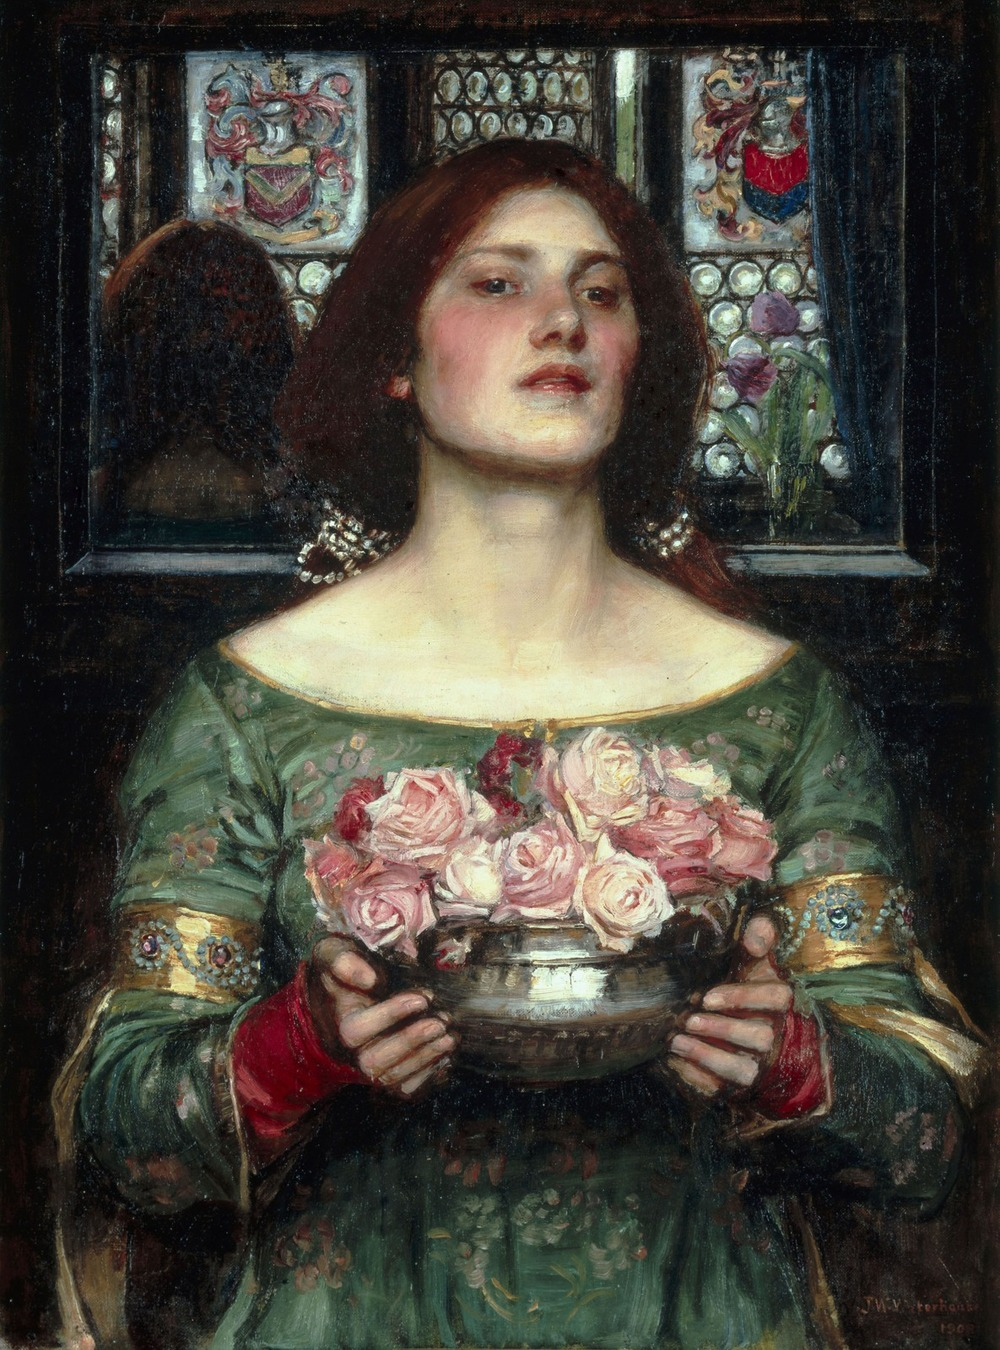 """Gather Ye Rosebuds While Ye May"" by John William Waterhouse - Licensed under Public Domain via Wikimedia Commons"